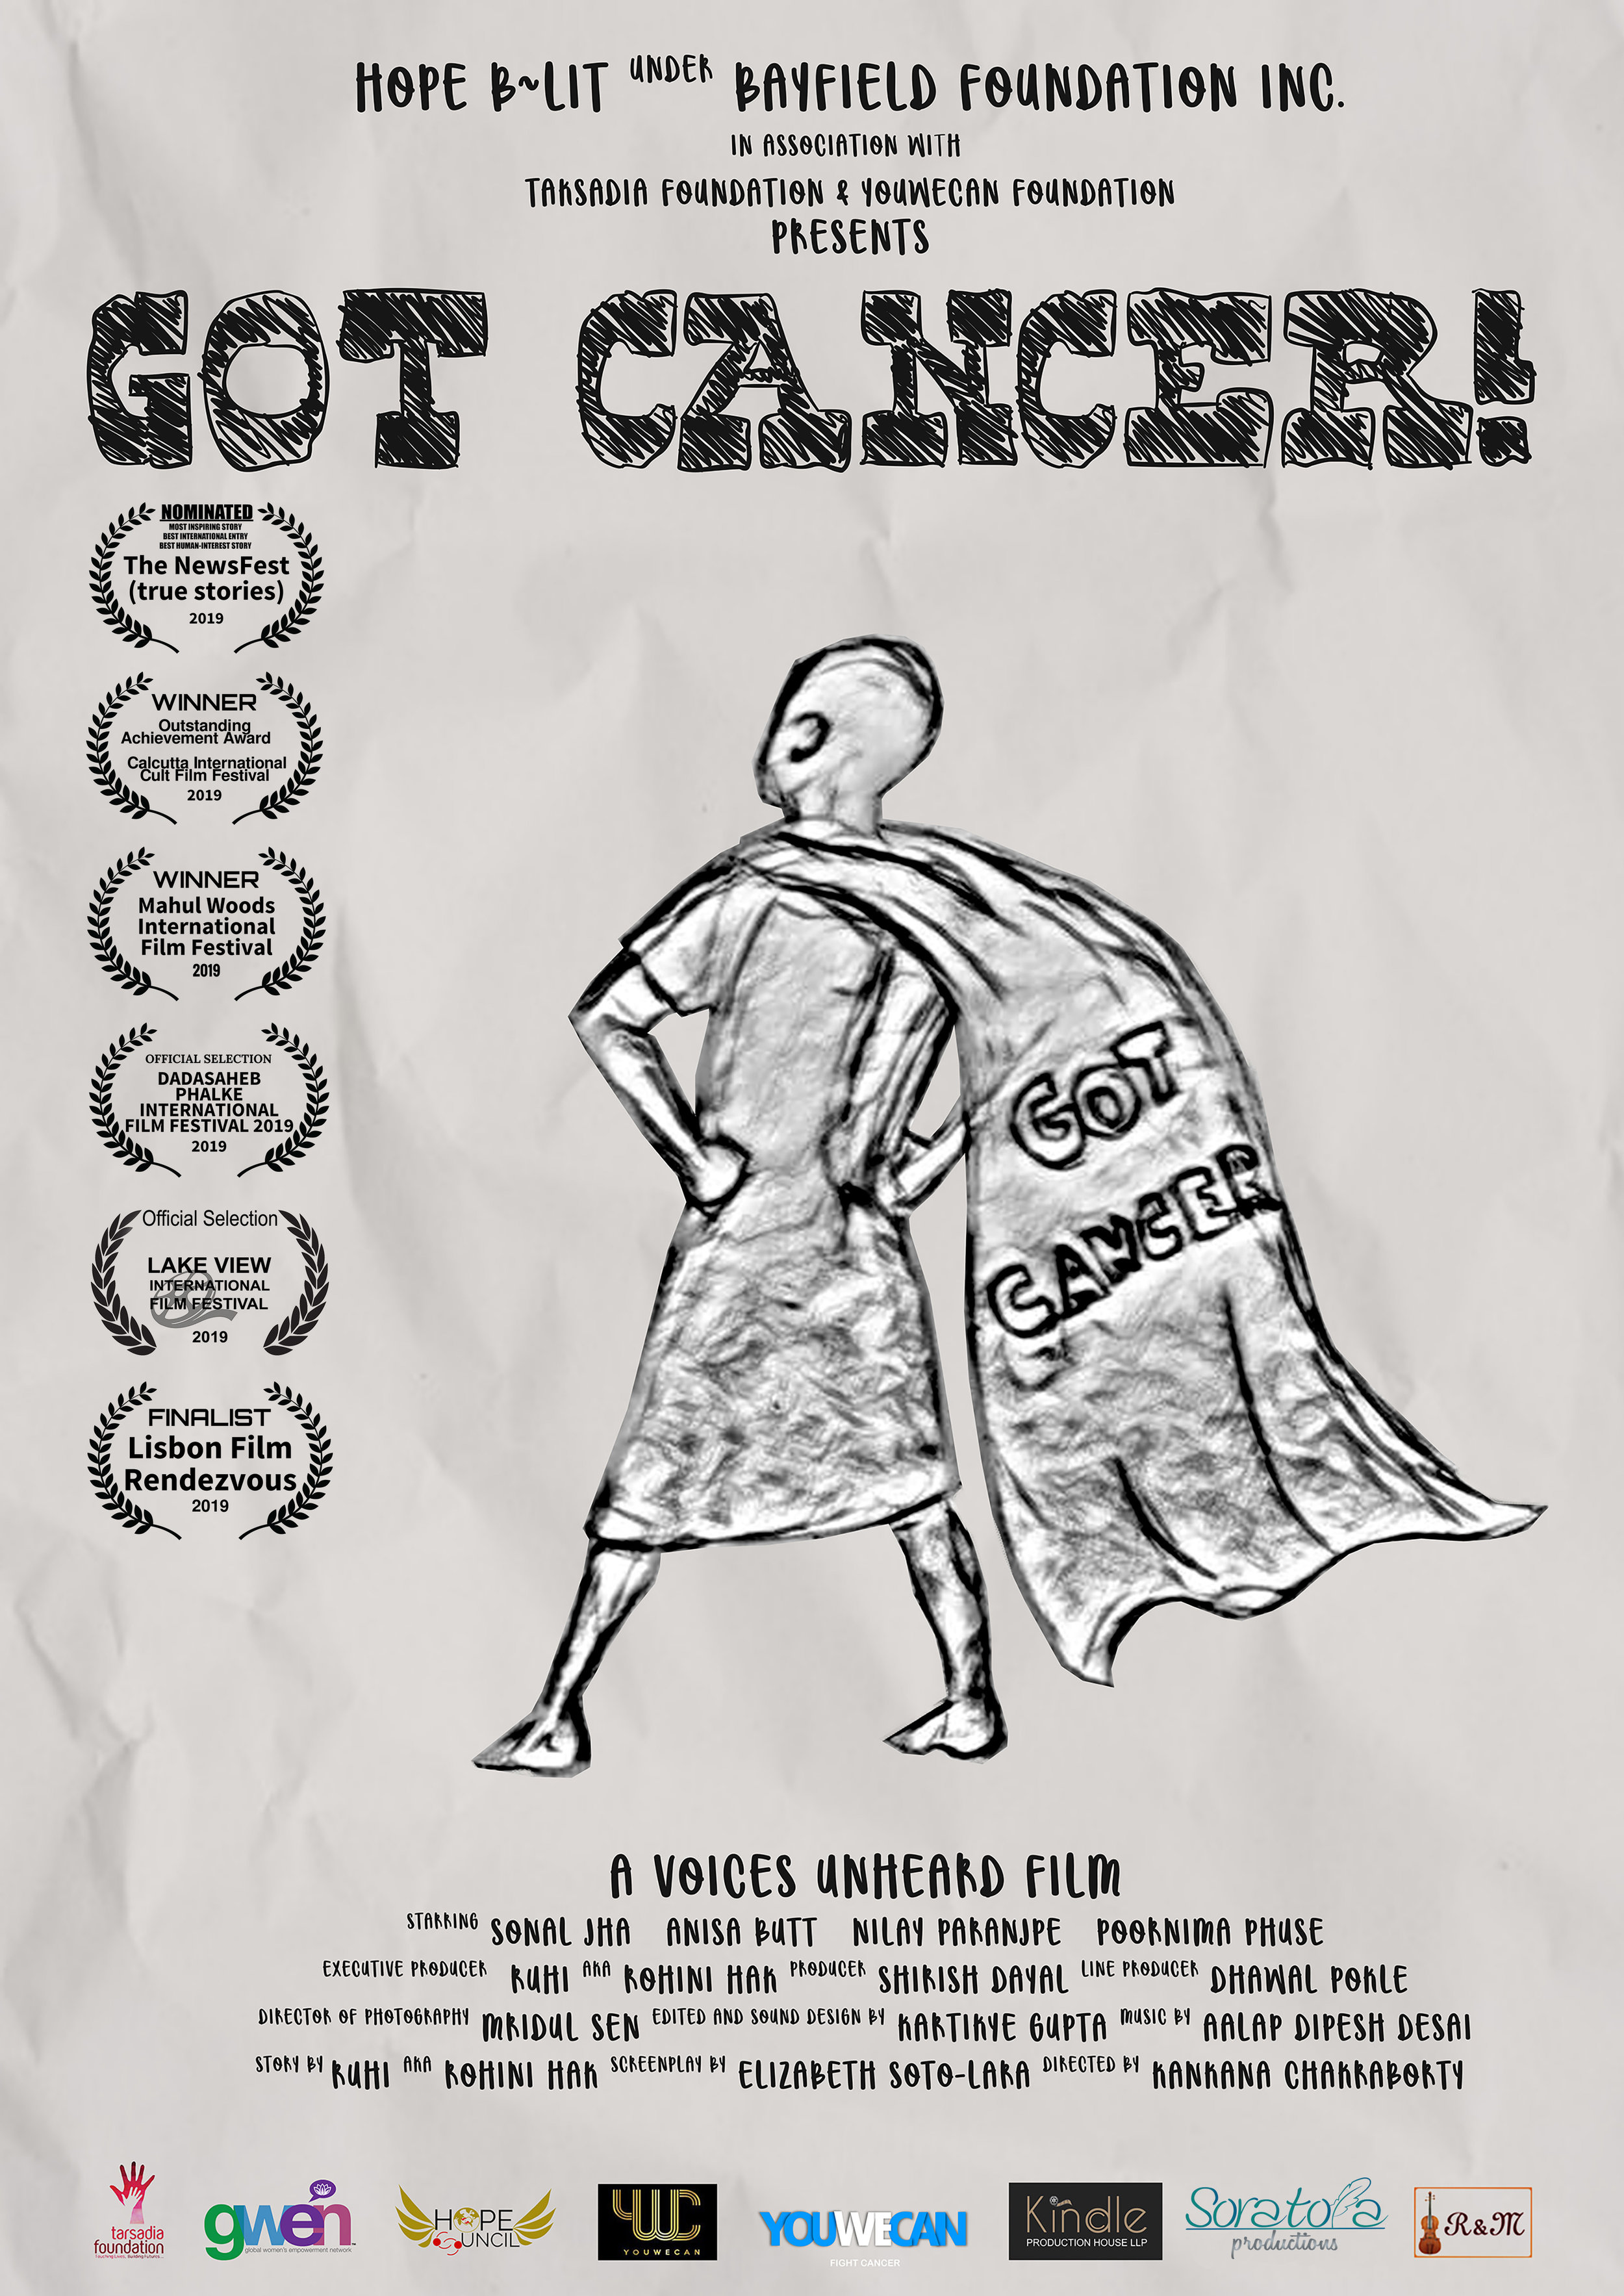 GOT CANCER! (2019) - (Short Film)Logline:A docu-fiction about the importance of nutrition in the treatment of kids with cancer through the eyes of a kid perspective and the struggle of his parents.Director: Kankana ChakrabortyScreenwriter: Elizabeth Soto-LaraStory by: Ruhi aka Rohini hakDirector or Photography: Mridul SenGenre: Documentary/Drama.Credit: Associate Production CompanyCountries: USA-India